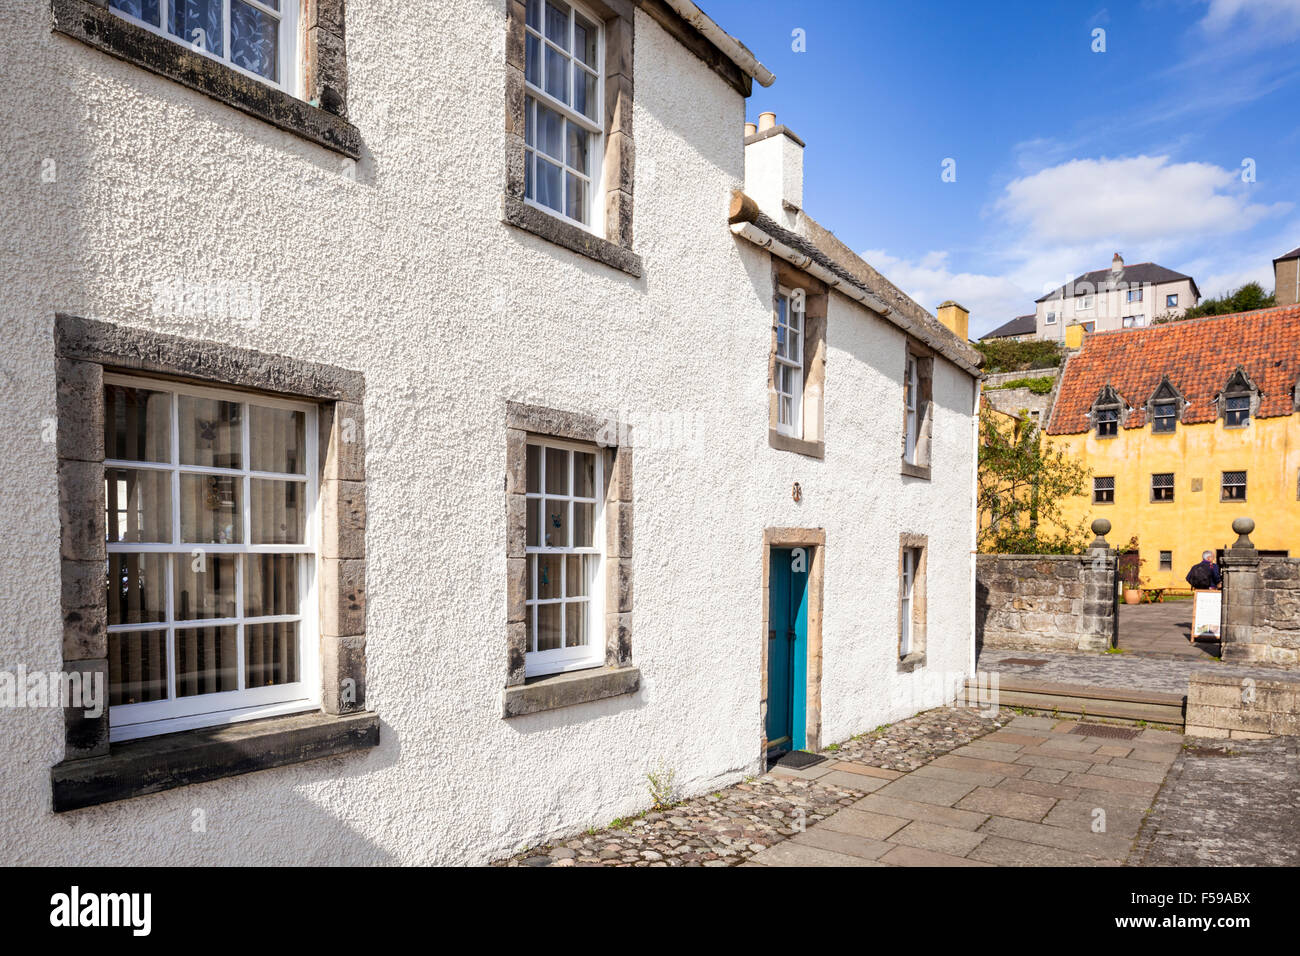 Old buildings in the historic Royal Burgh of Culross, Fife, Scotland UK - Stock Image